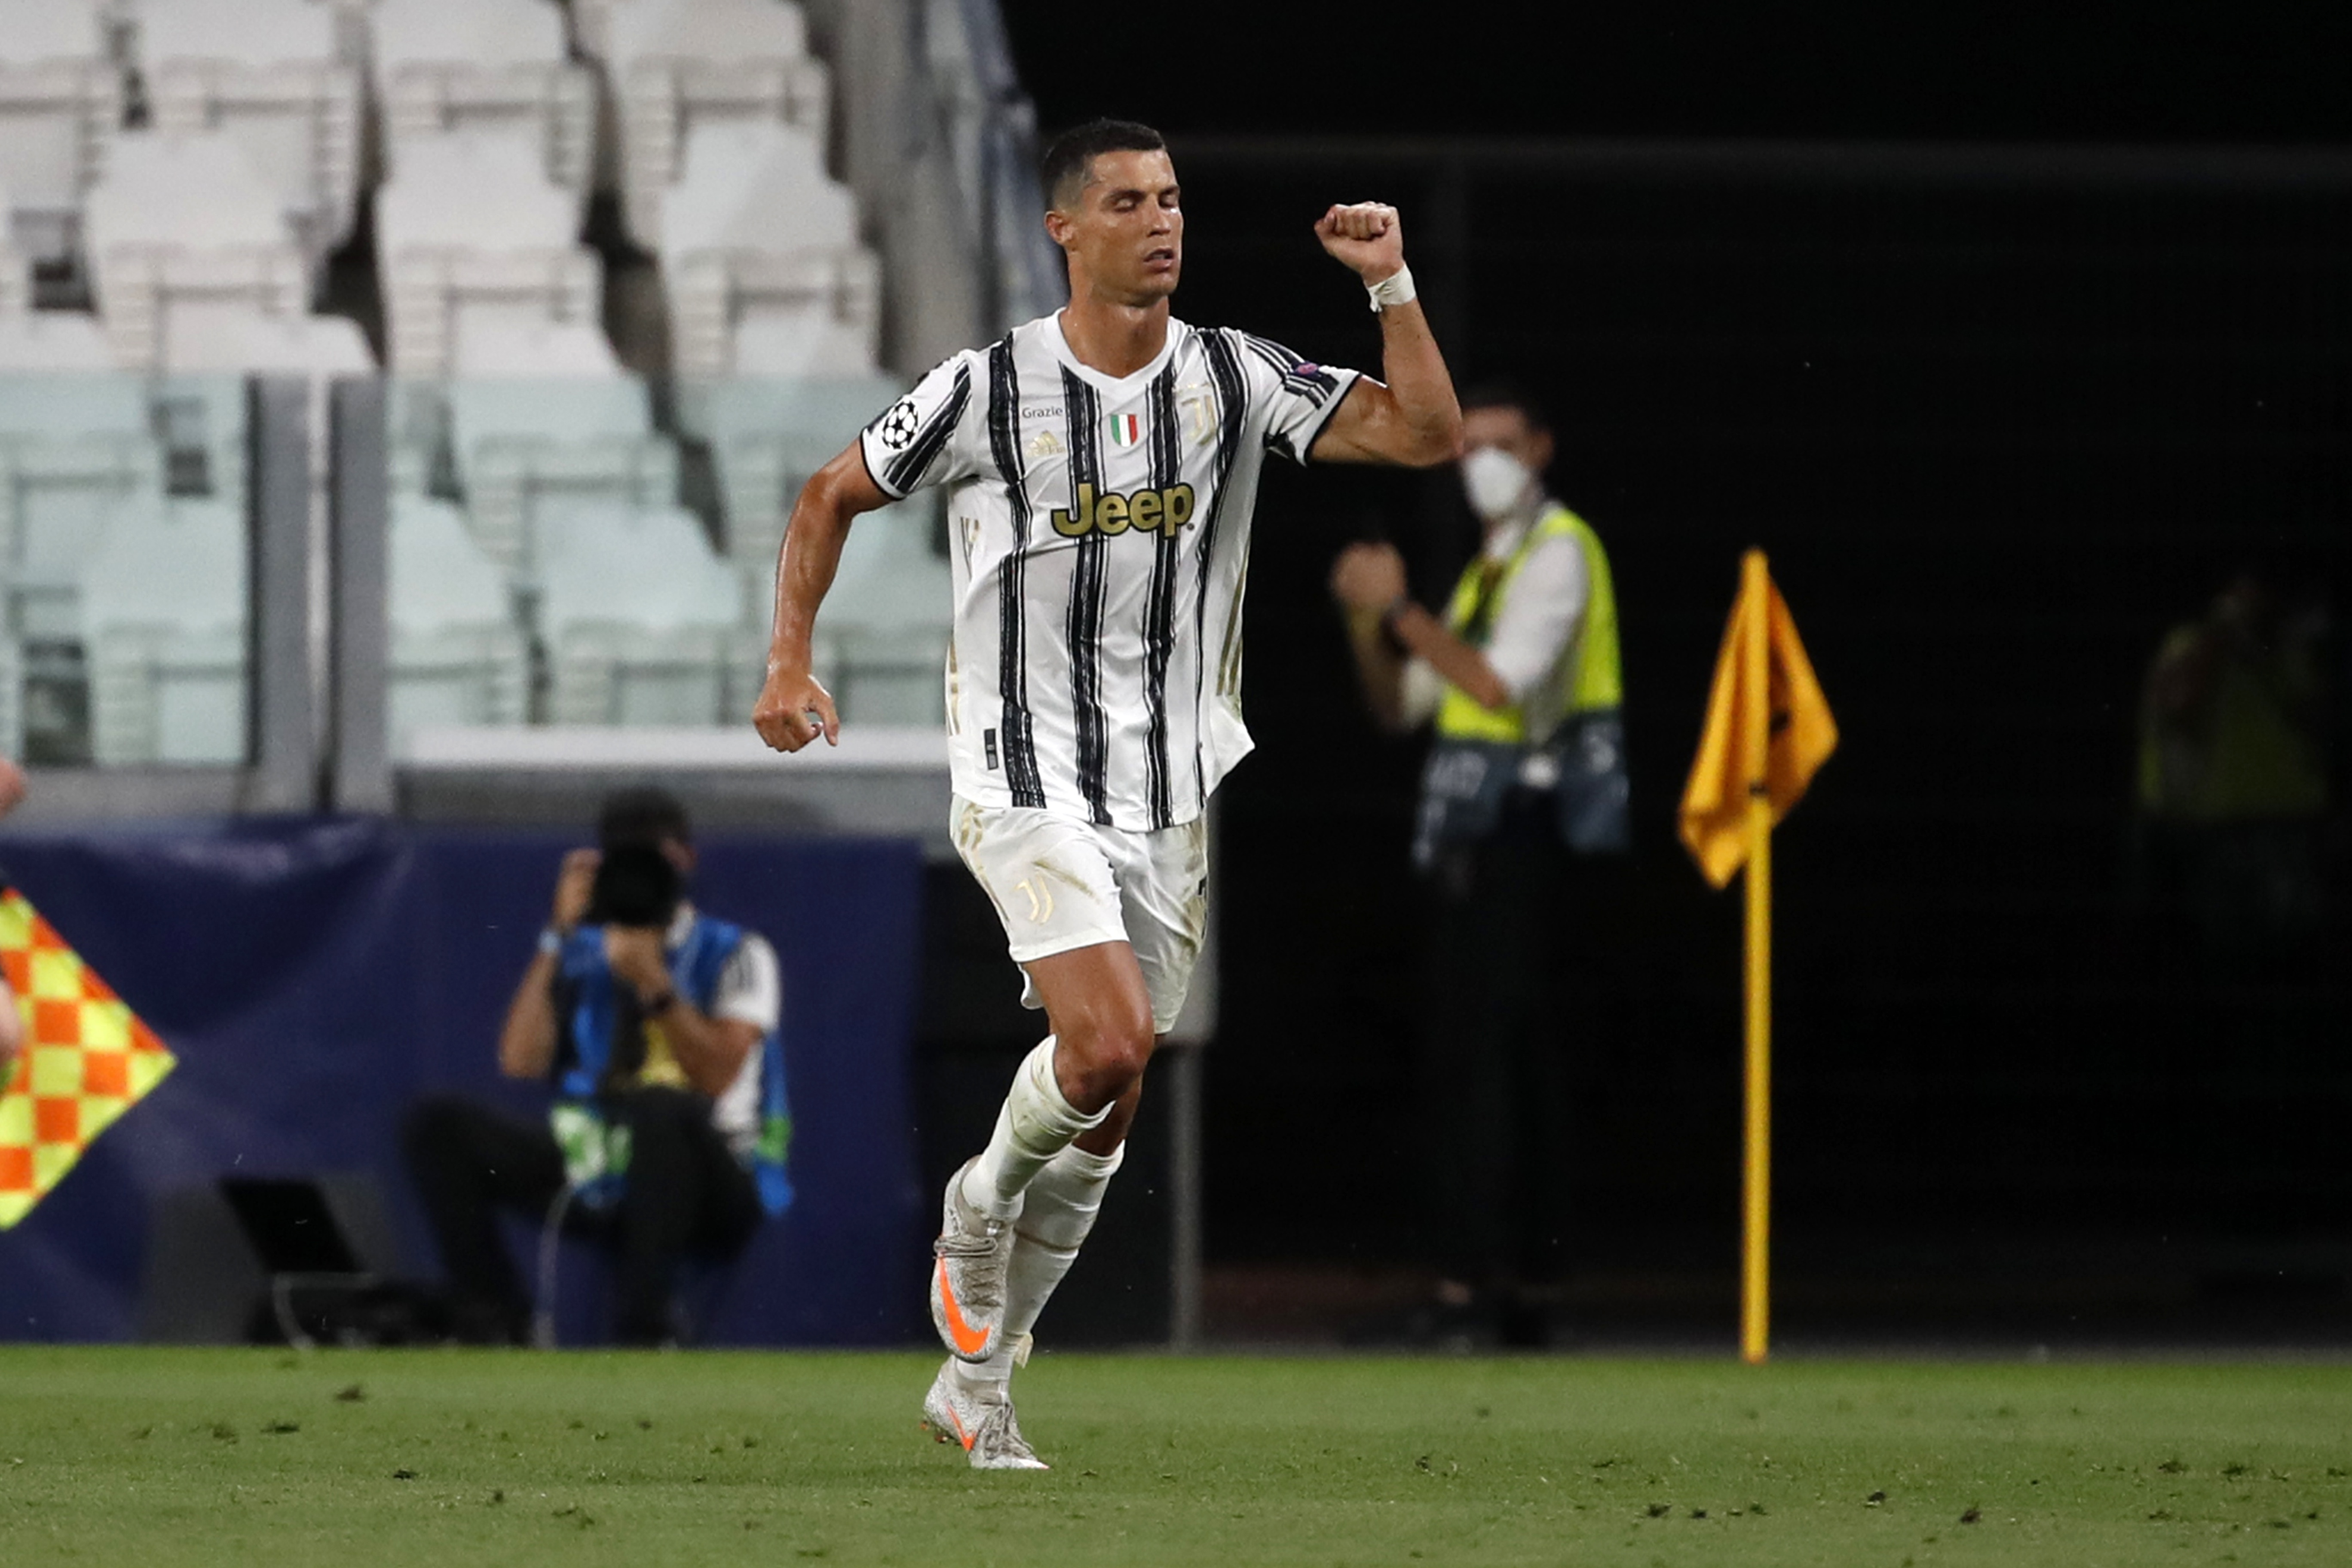 cristiano ronaldo tests positive for covid 19 boston news weather sports whdh 7news 2